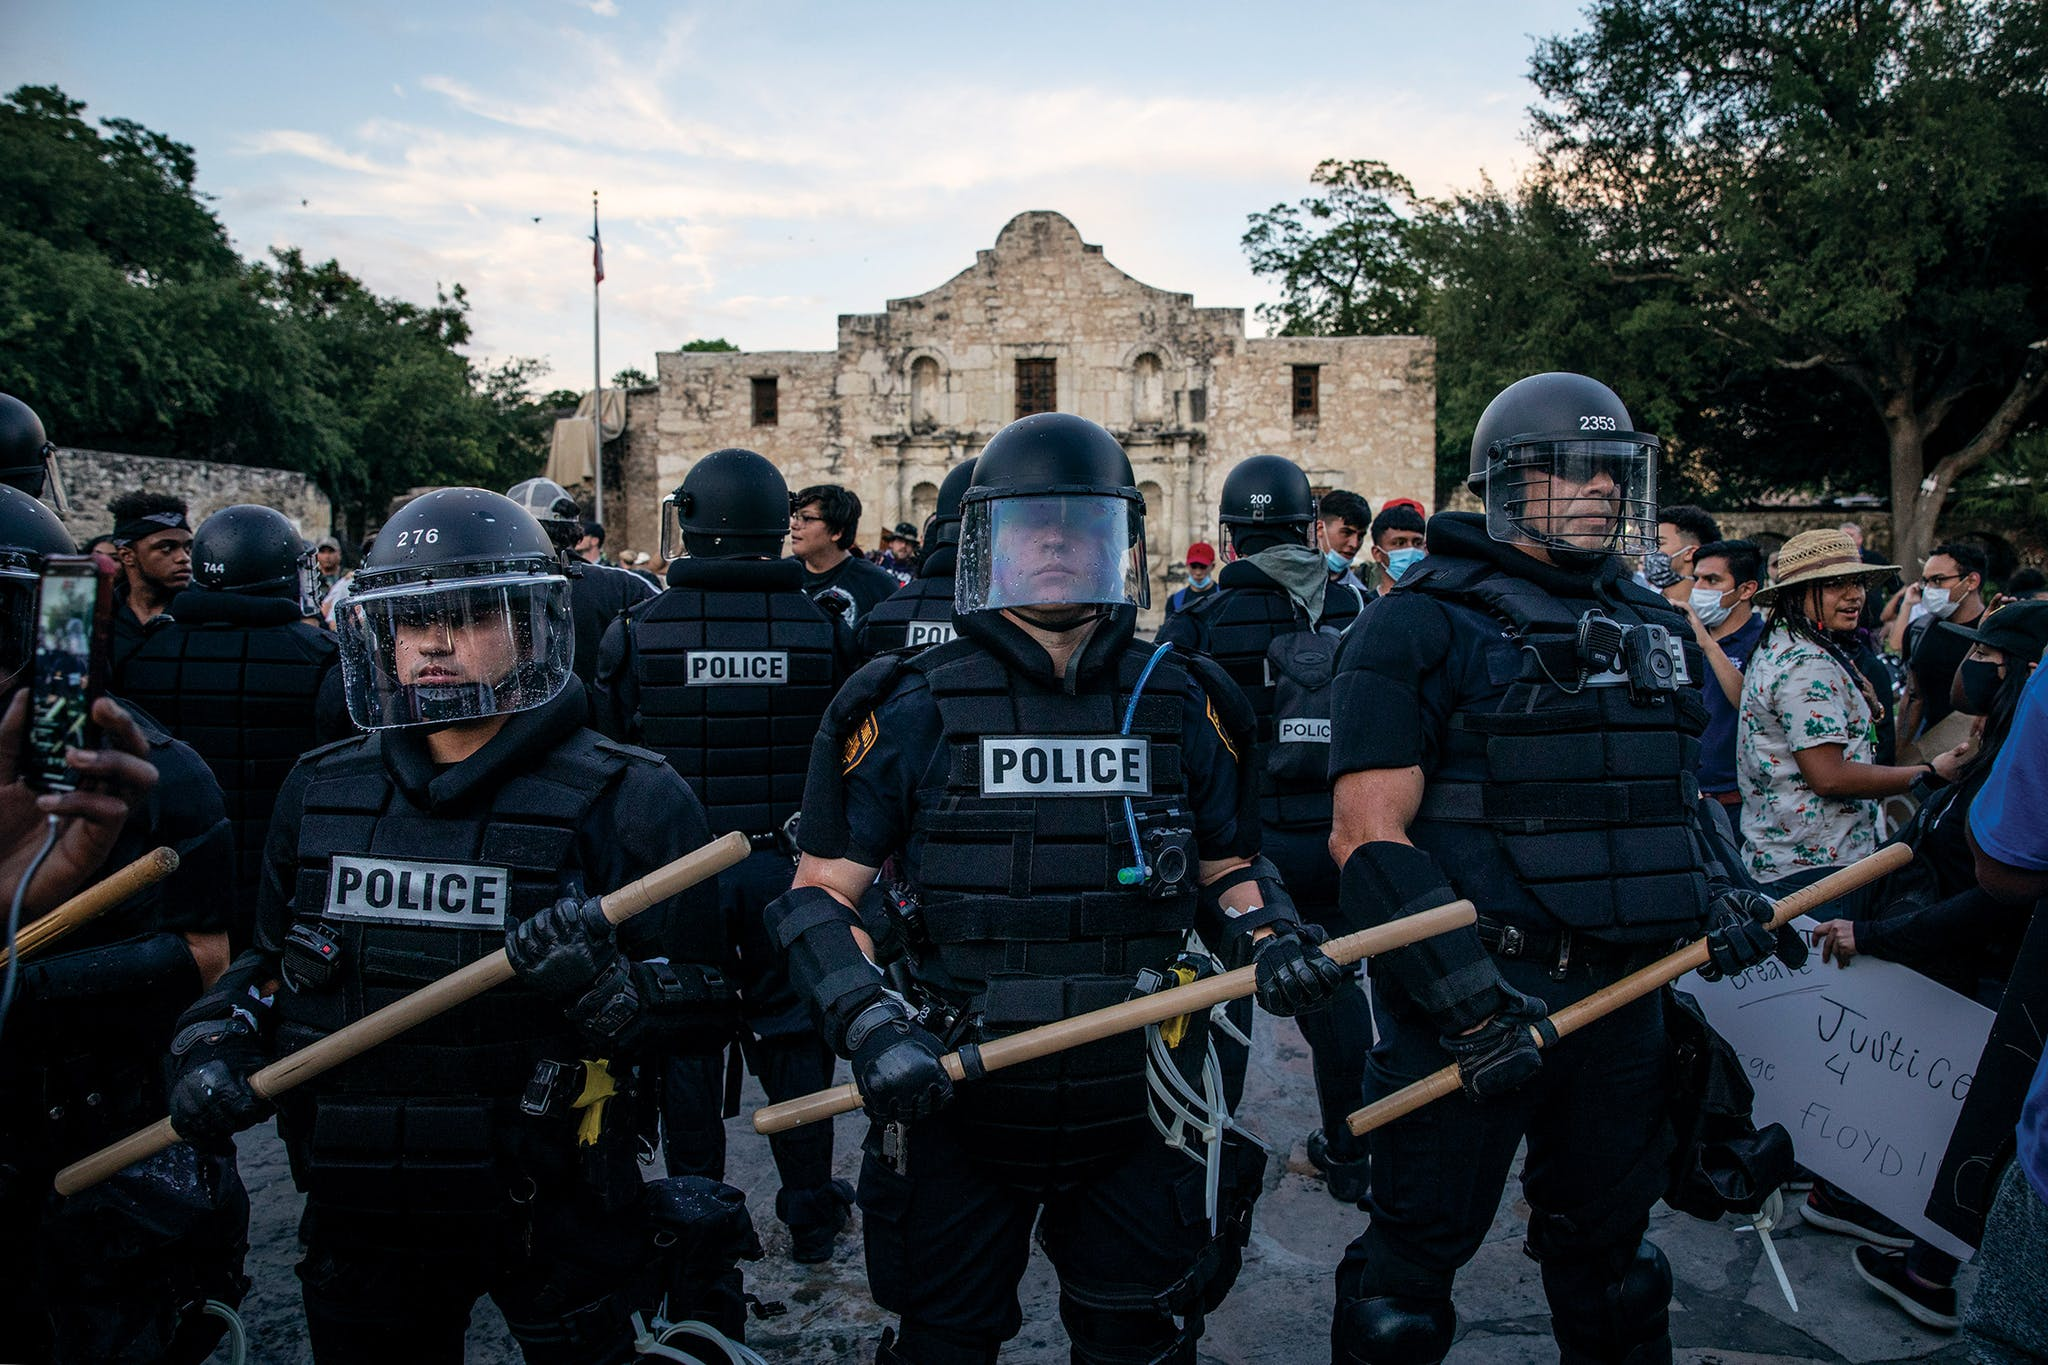 San Antonio Police officers deploy in front of the Alamo in downtown San Antonio on May 30, 2020. People took to the streets of San Antonio to protest the killing of George Floyd in Minnesota just five days earlier.